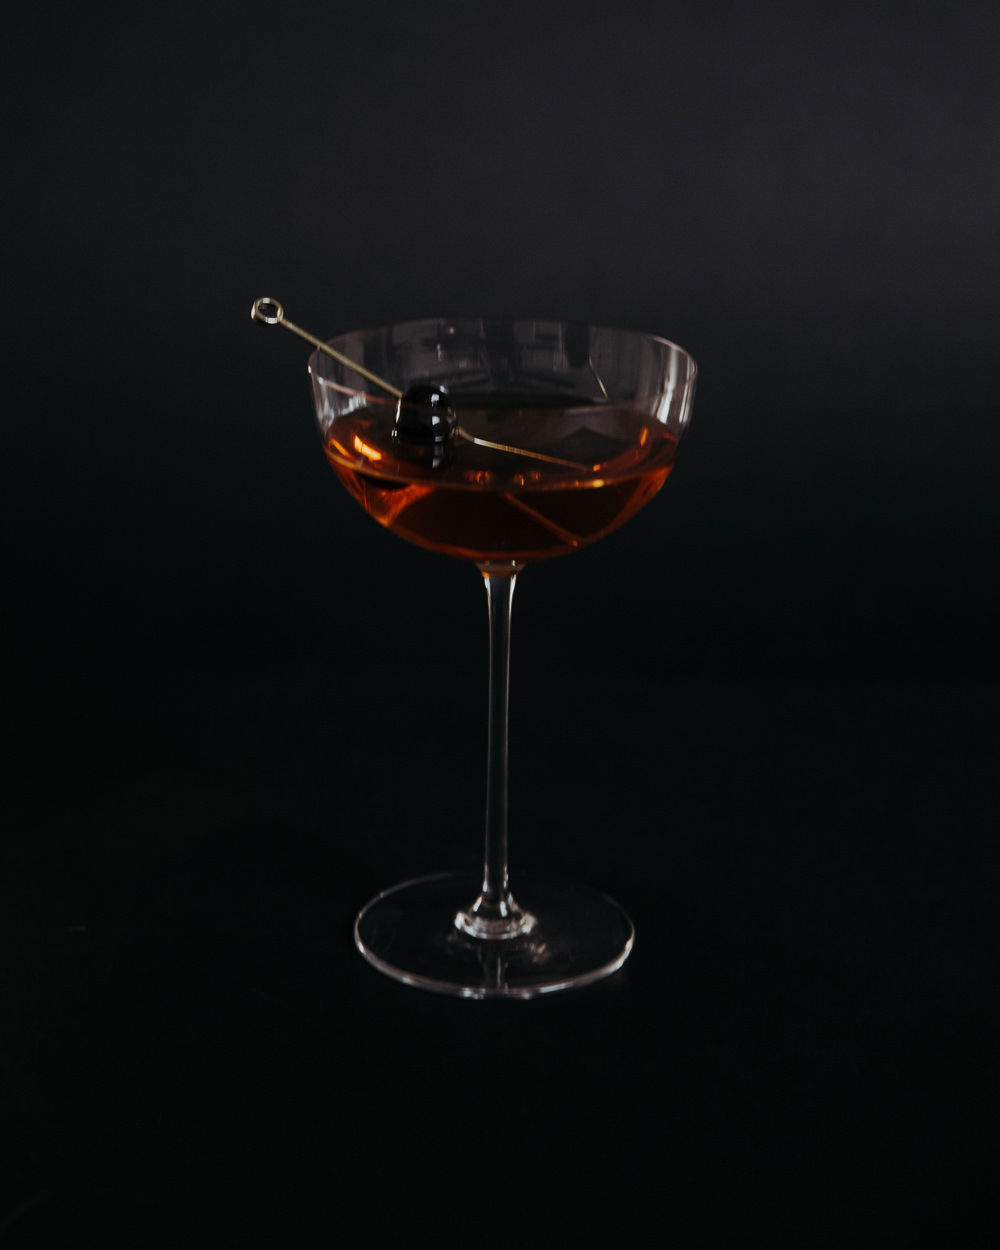 Coffee + Cherry - Dear Darla - 1 ½ oz Dickel rye½ oz Bual Madeira½ oz Amaro Montenegro3 dashes Honest John Coffee + Cherry BittersStir all ingredients in a stirring glass with ice. Strain with a julep strainer into a coupe glass. Garnish with a Luxardo cherry.